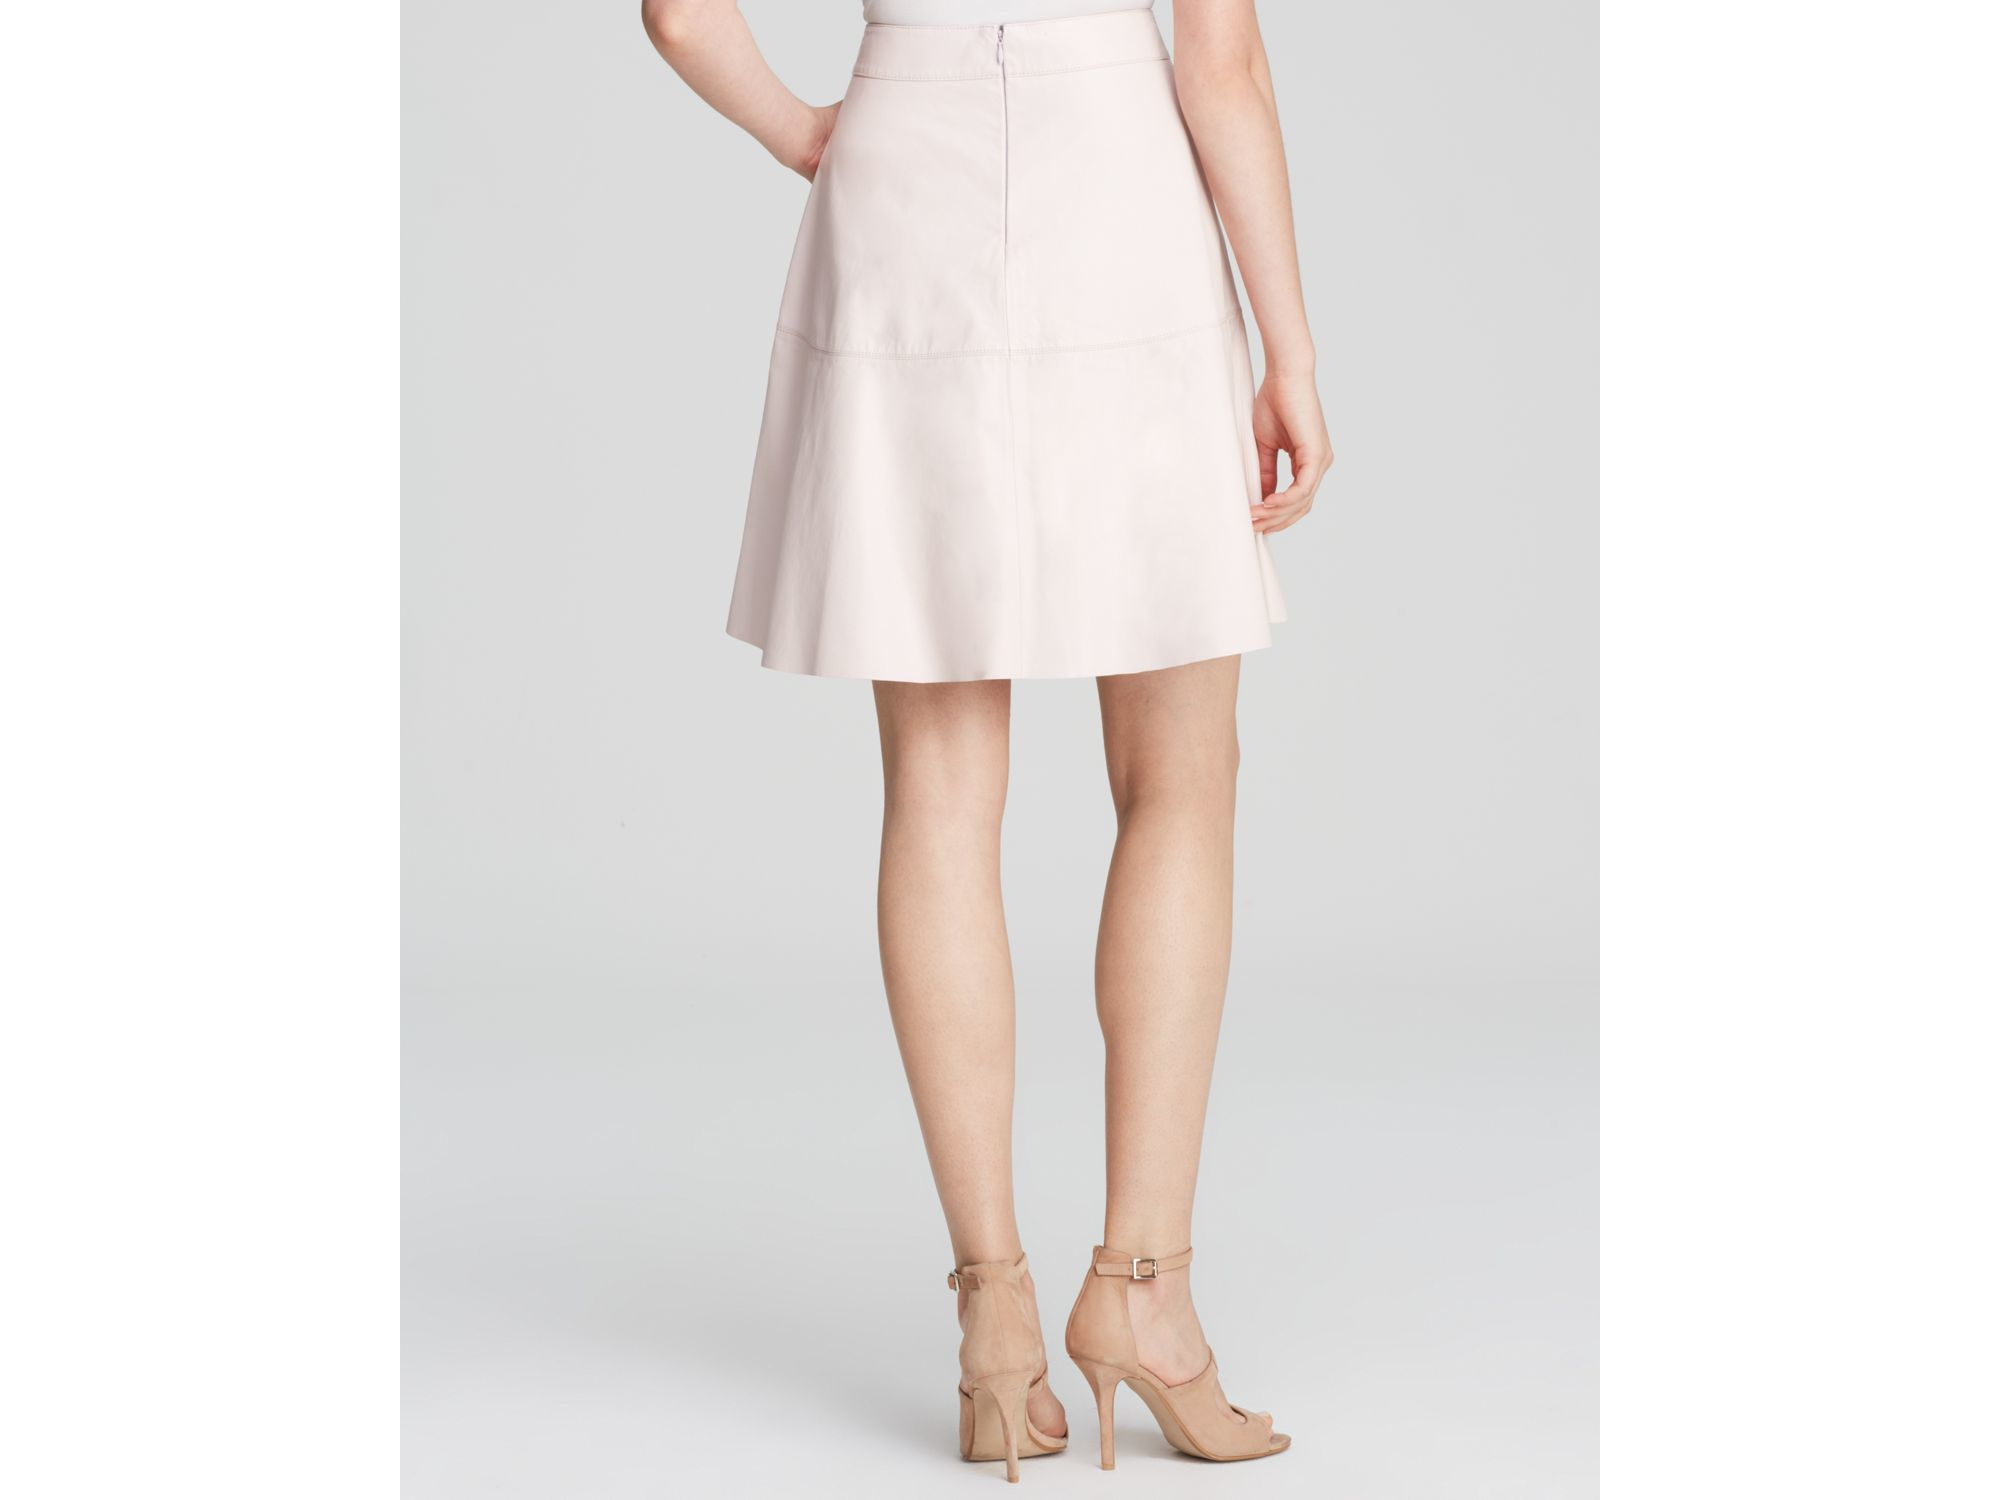 4daf20d24f Joie Decollete Nappa Leather Skirt in Natural - Lyst